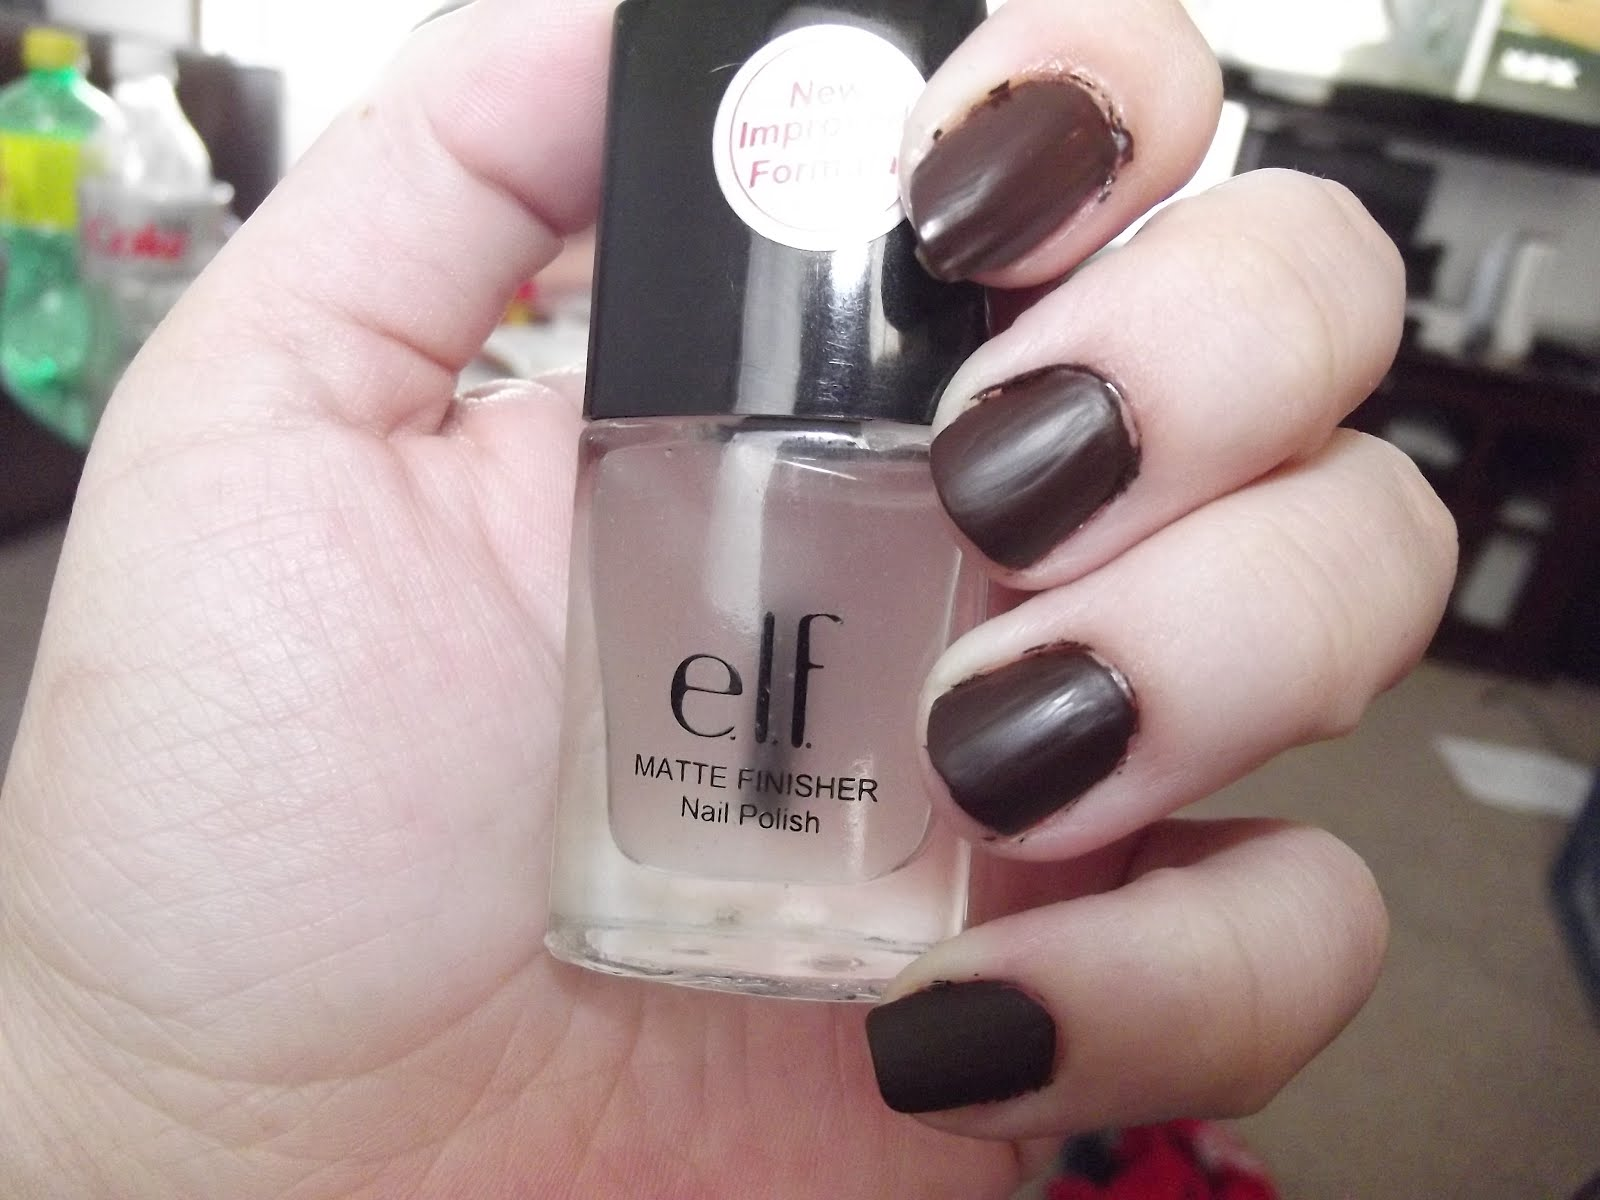 Jwhackers Elf Matte Finisher Clear Nail Polish Review